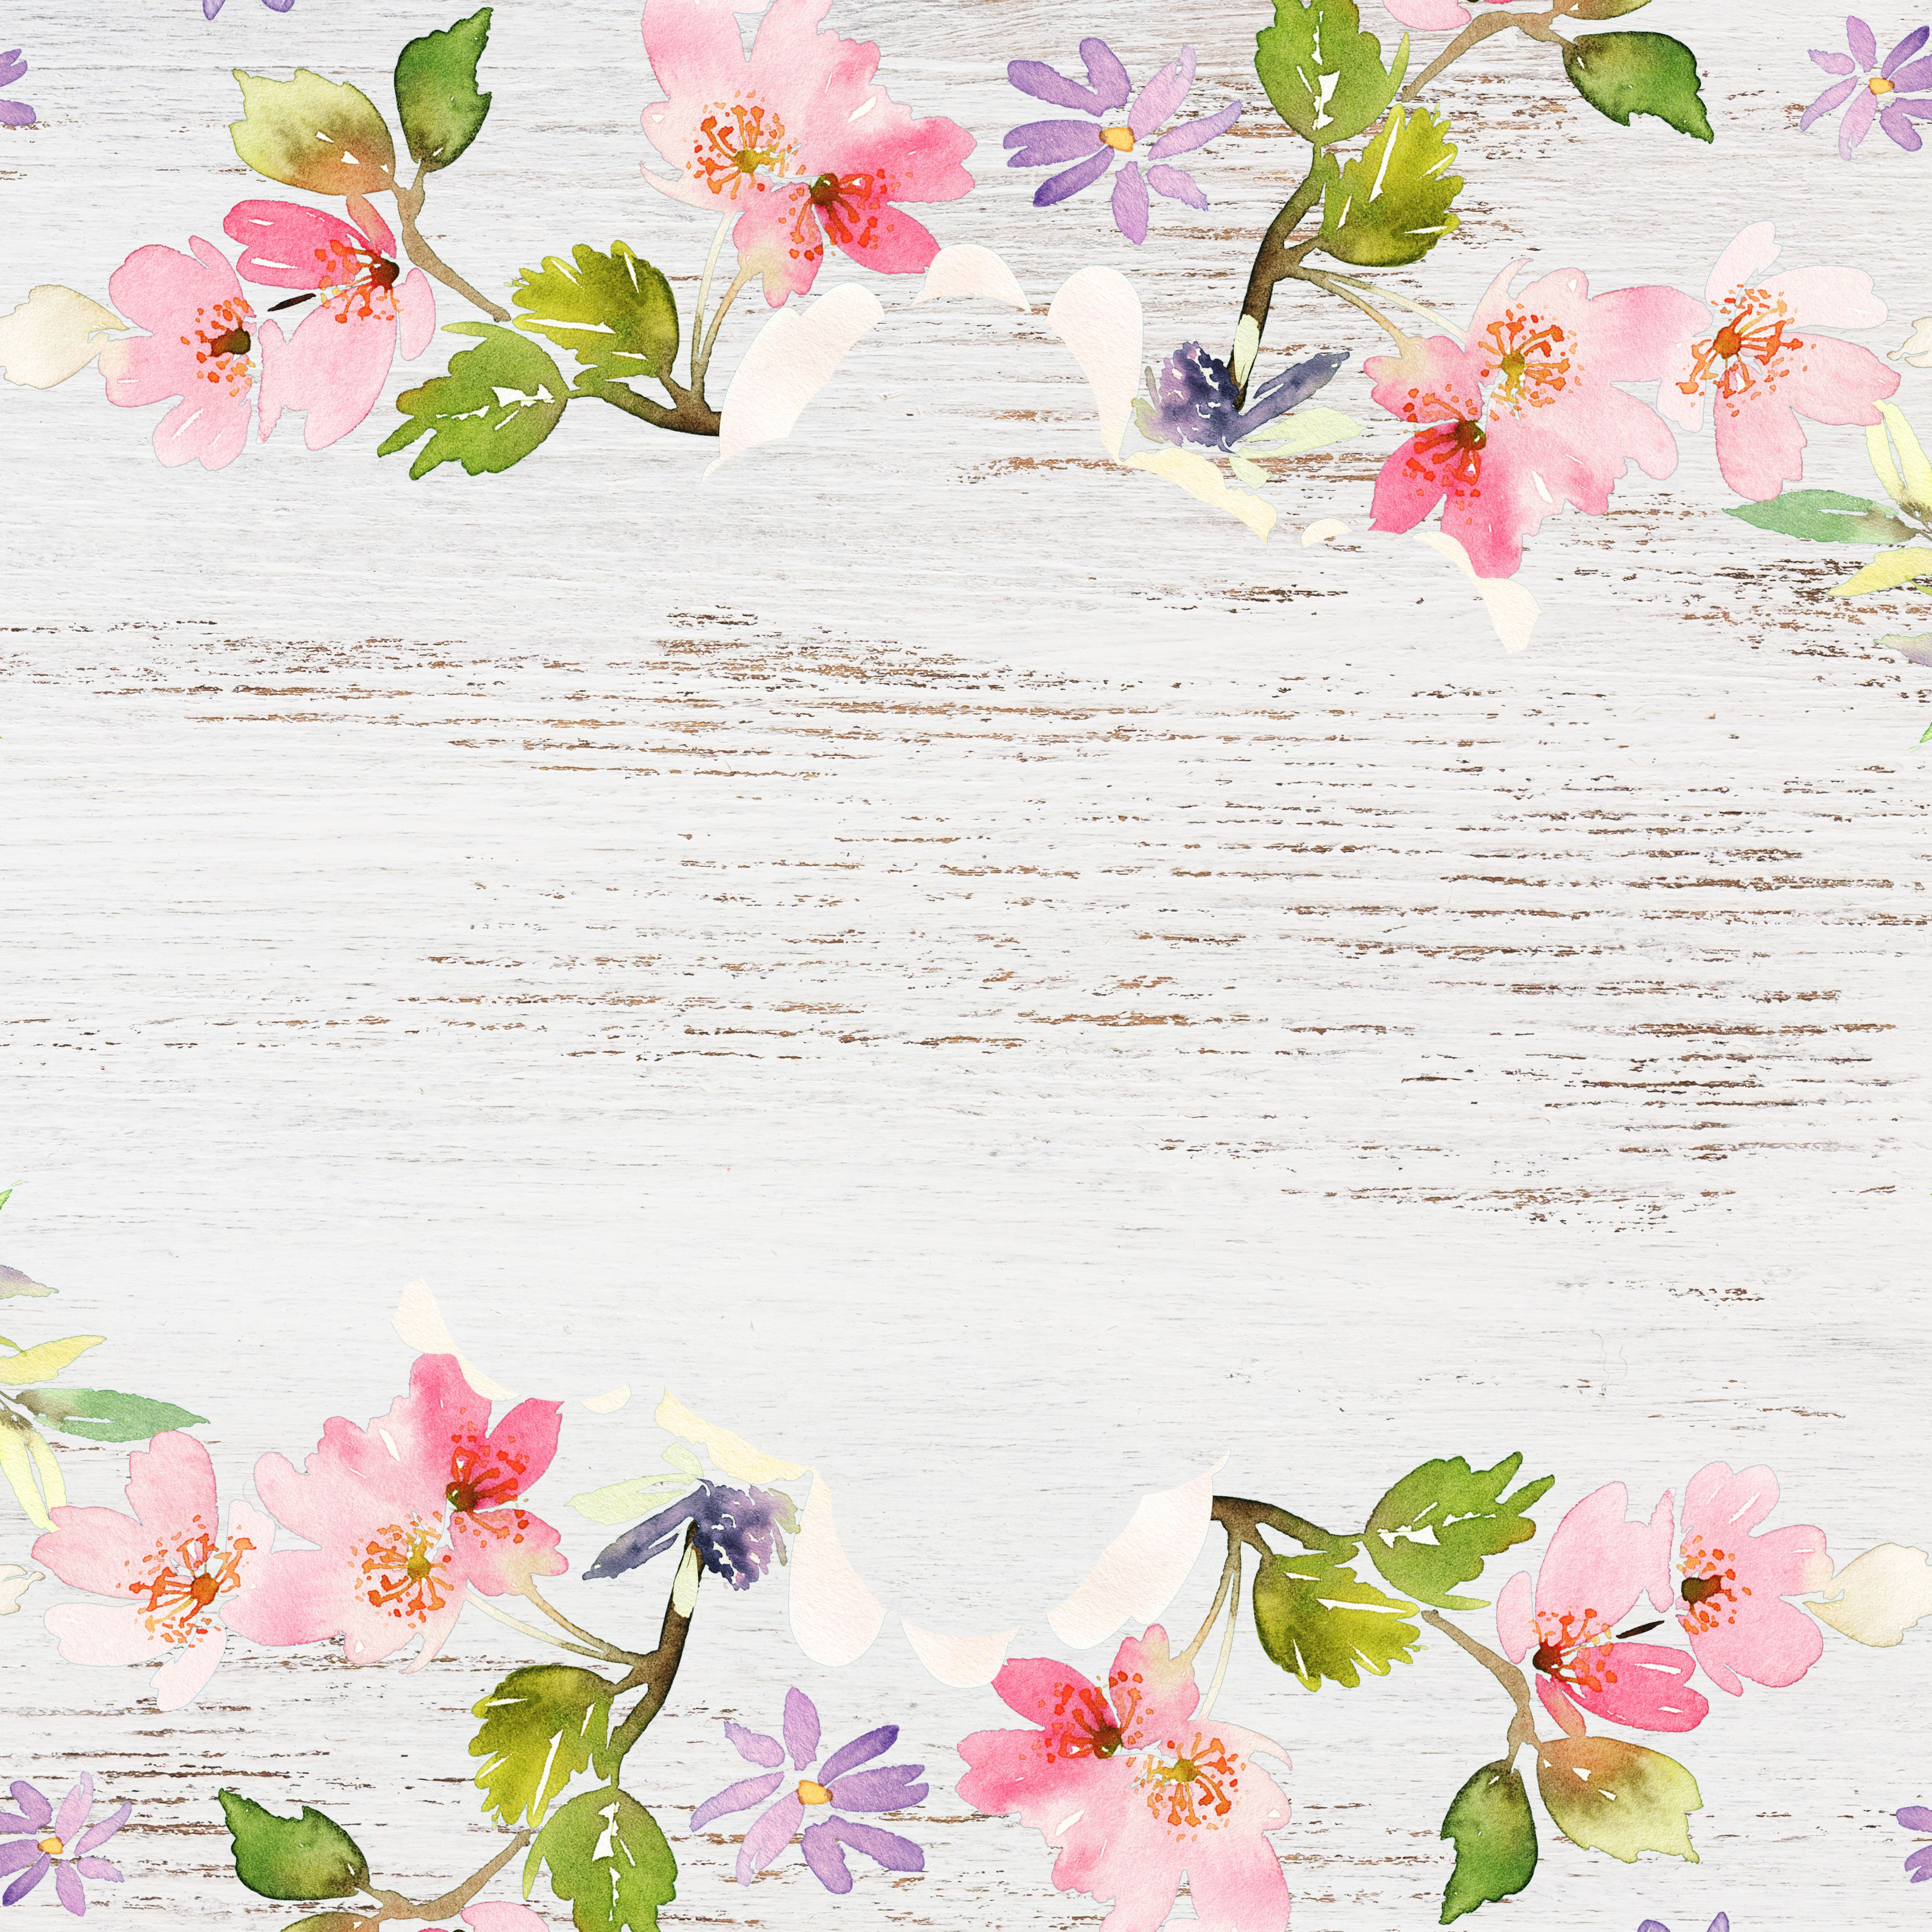 Delightful Distressed Floral Digital Paper Free Pretty Things For You Vintage Floral Backgrounds Watercolor Wallpaper Iphone Scrapbook Images